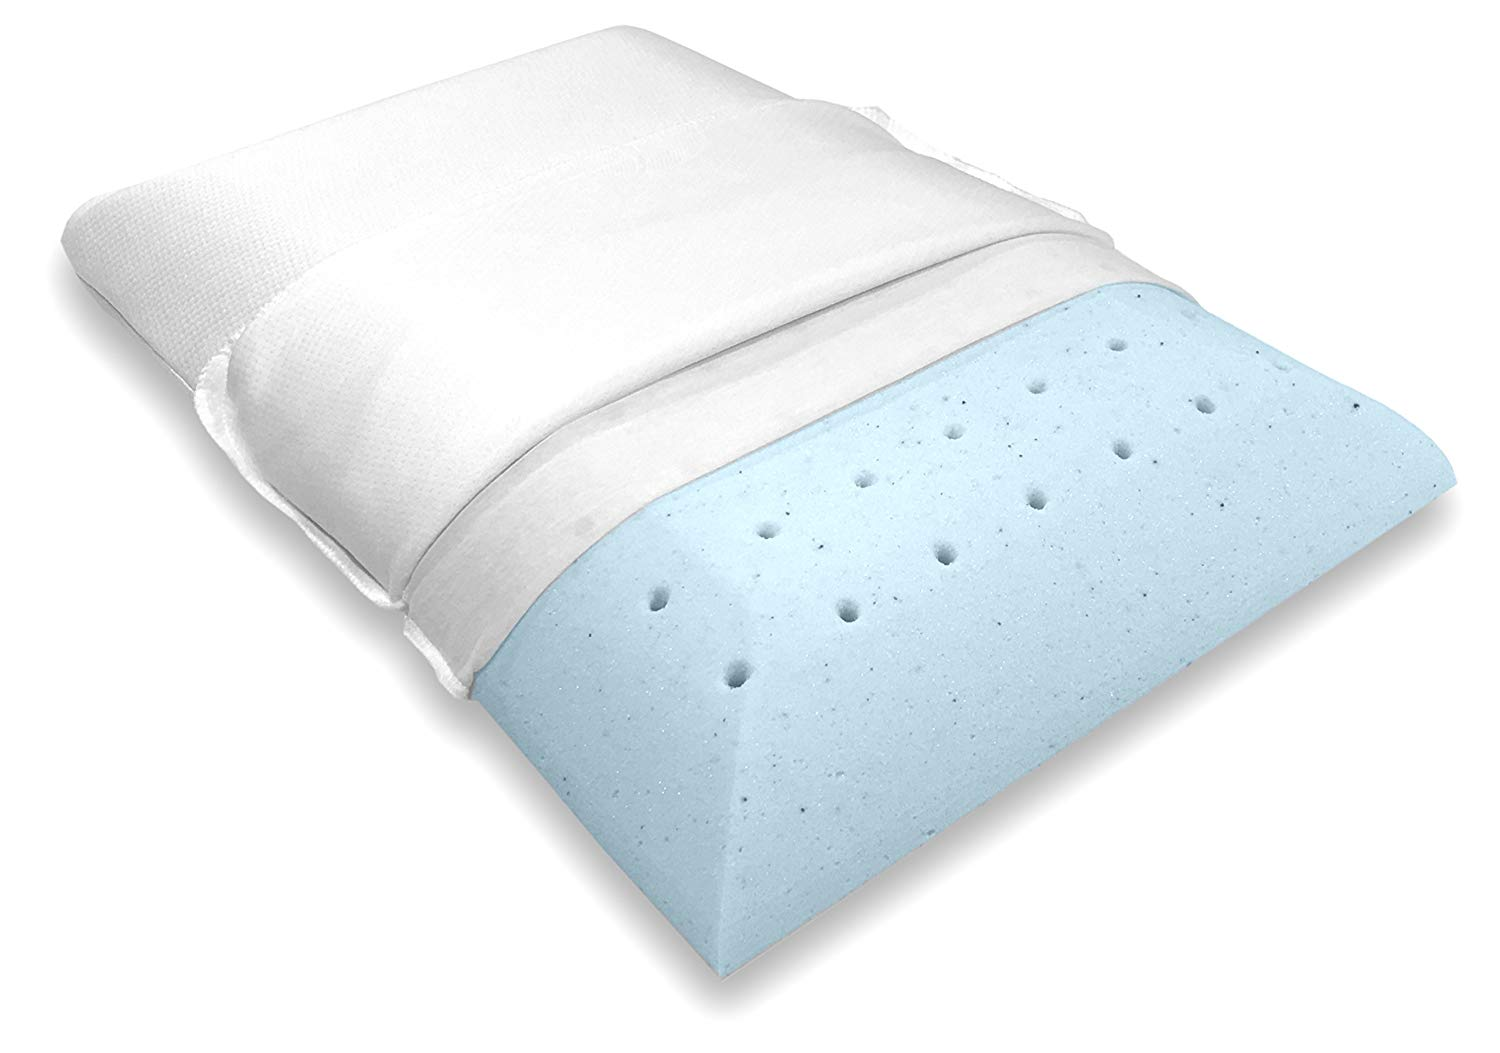 Bluewave Bedding Review by www.snoremagazine.com